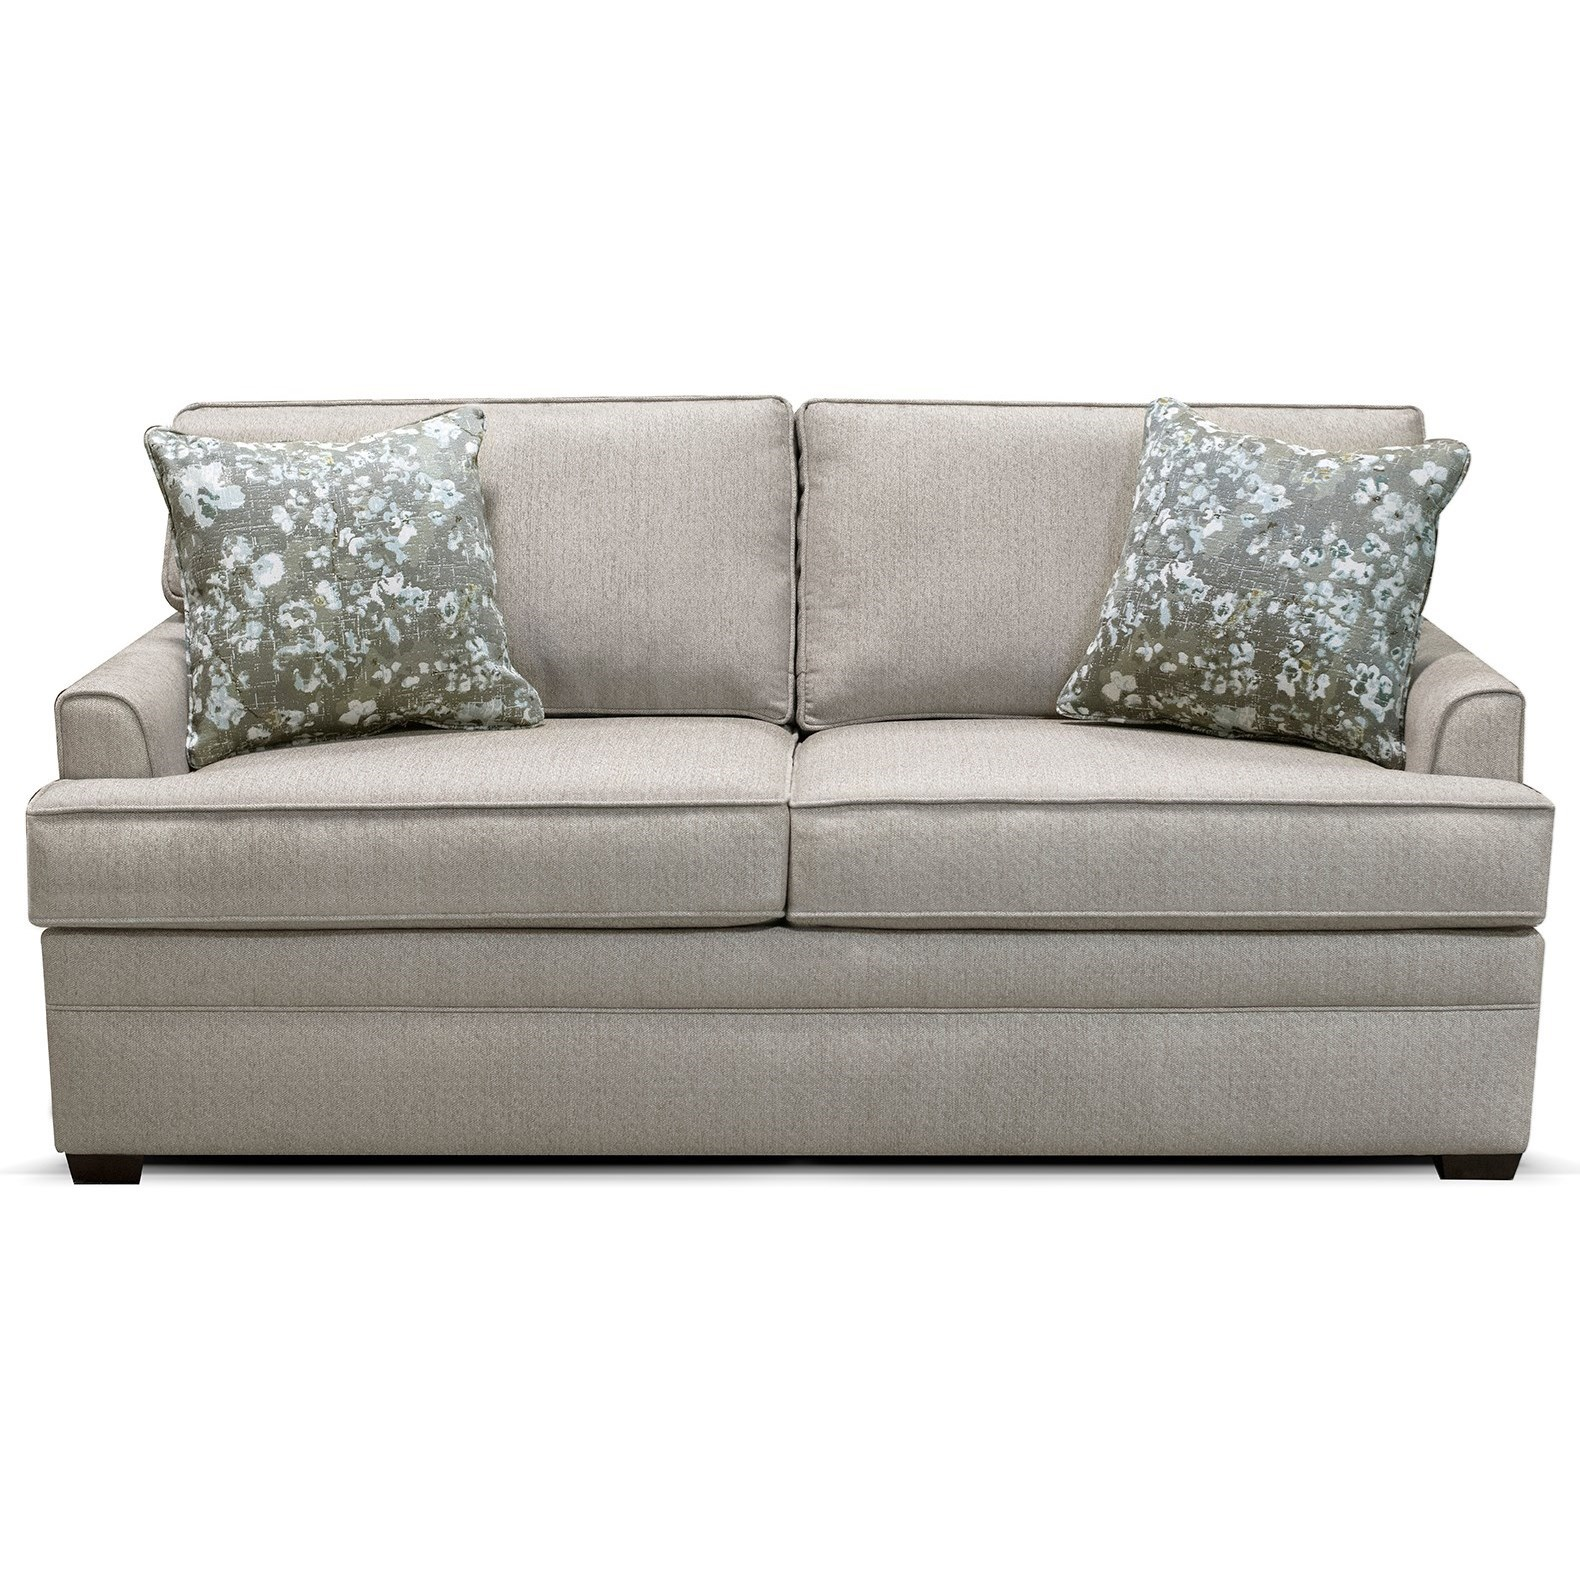 Hallie Sofa by England at SuperStore